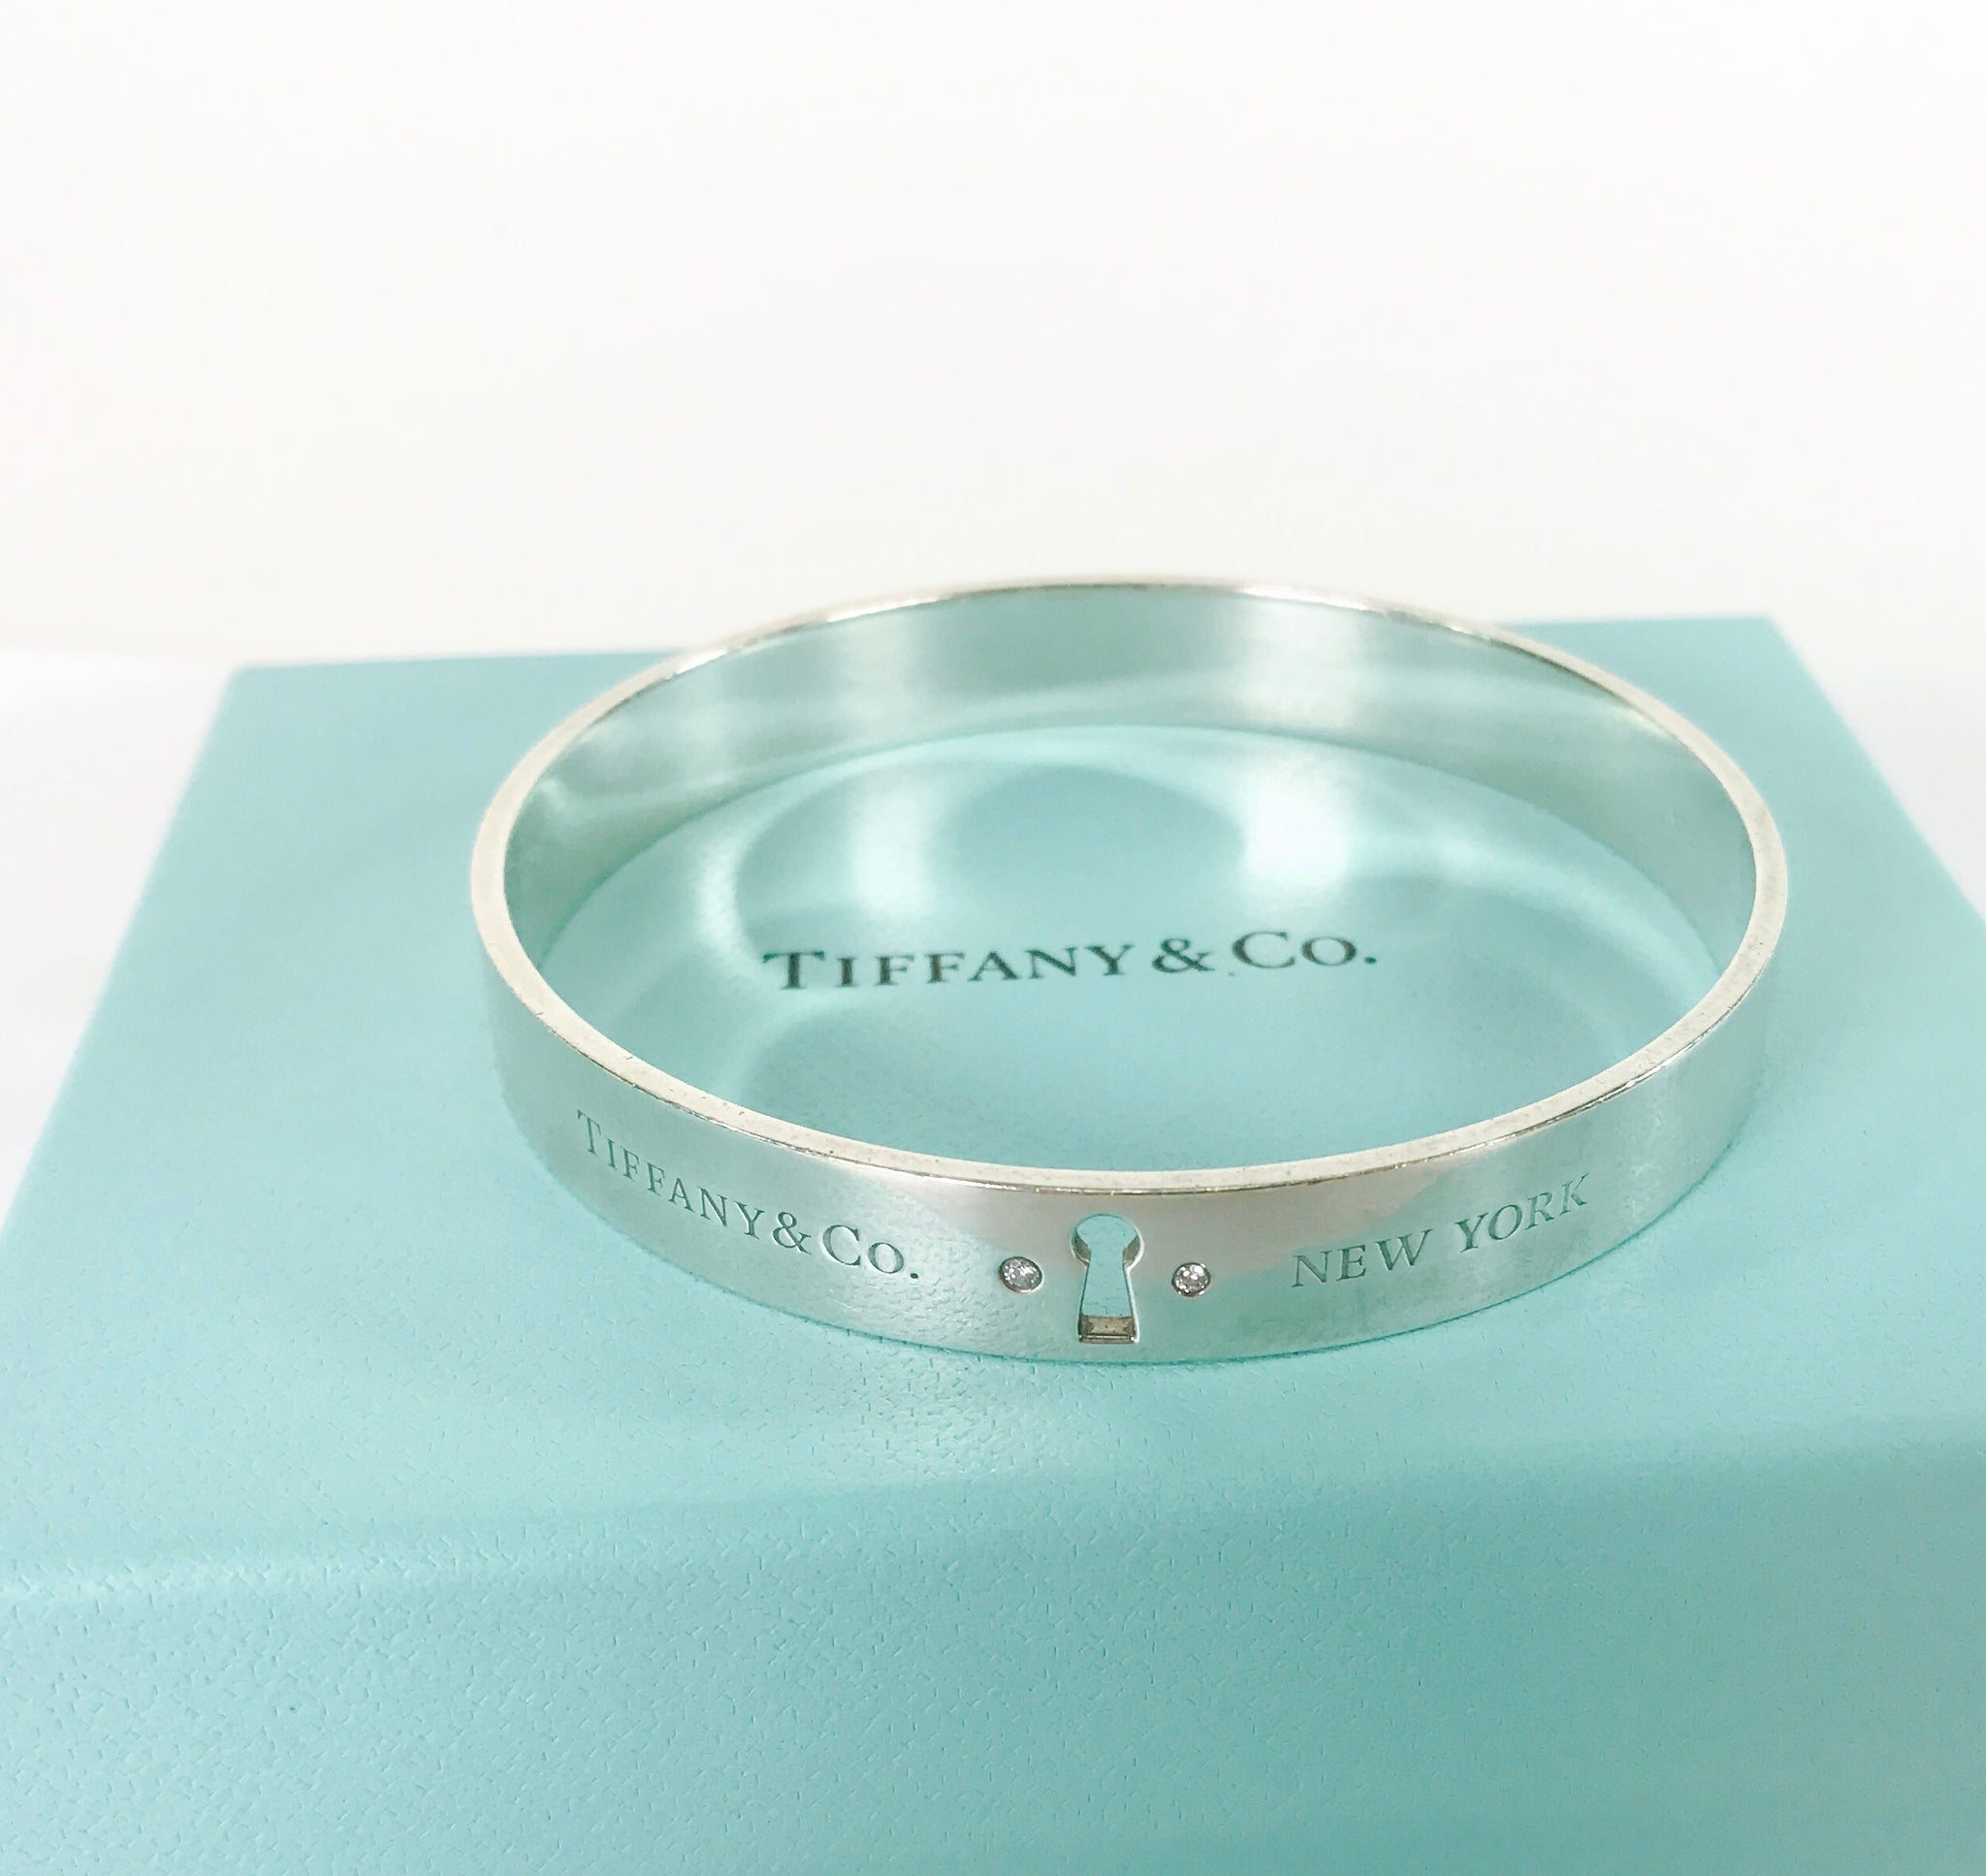 dc1620cd5 ... Load image into Gallery viewer, Tiffany & Co Sterling Silver 925 Tiffany  Locks Bangle ...